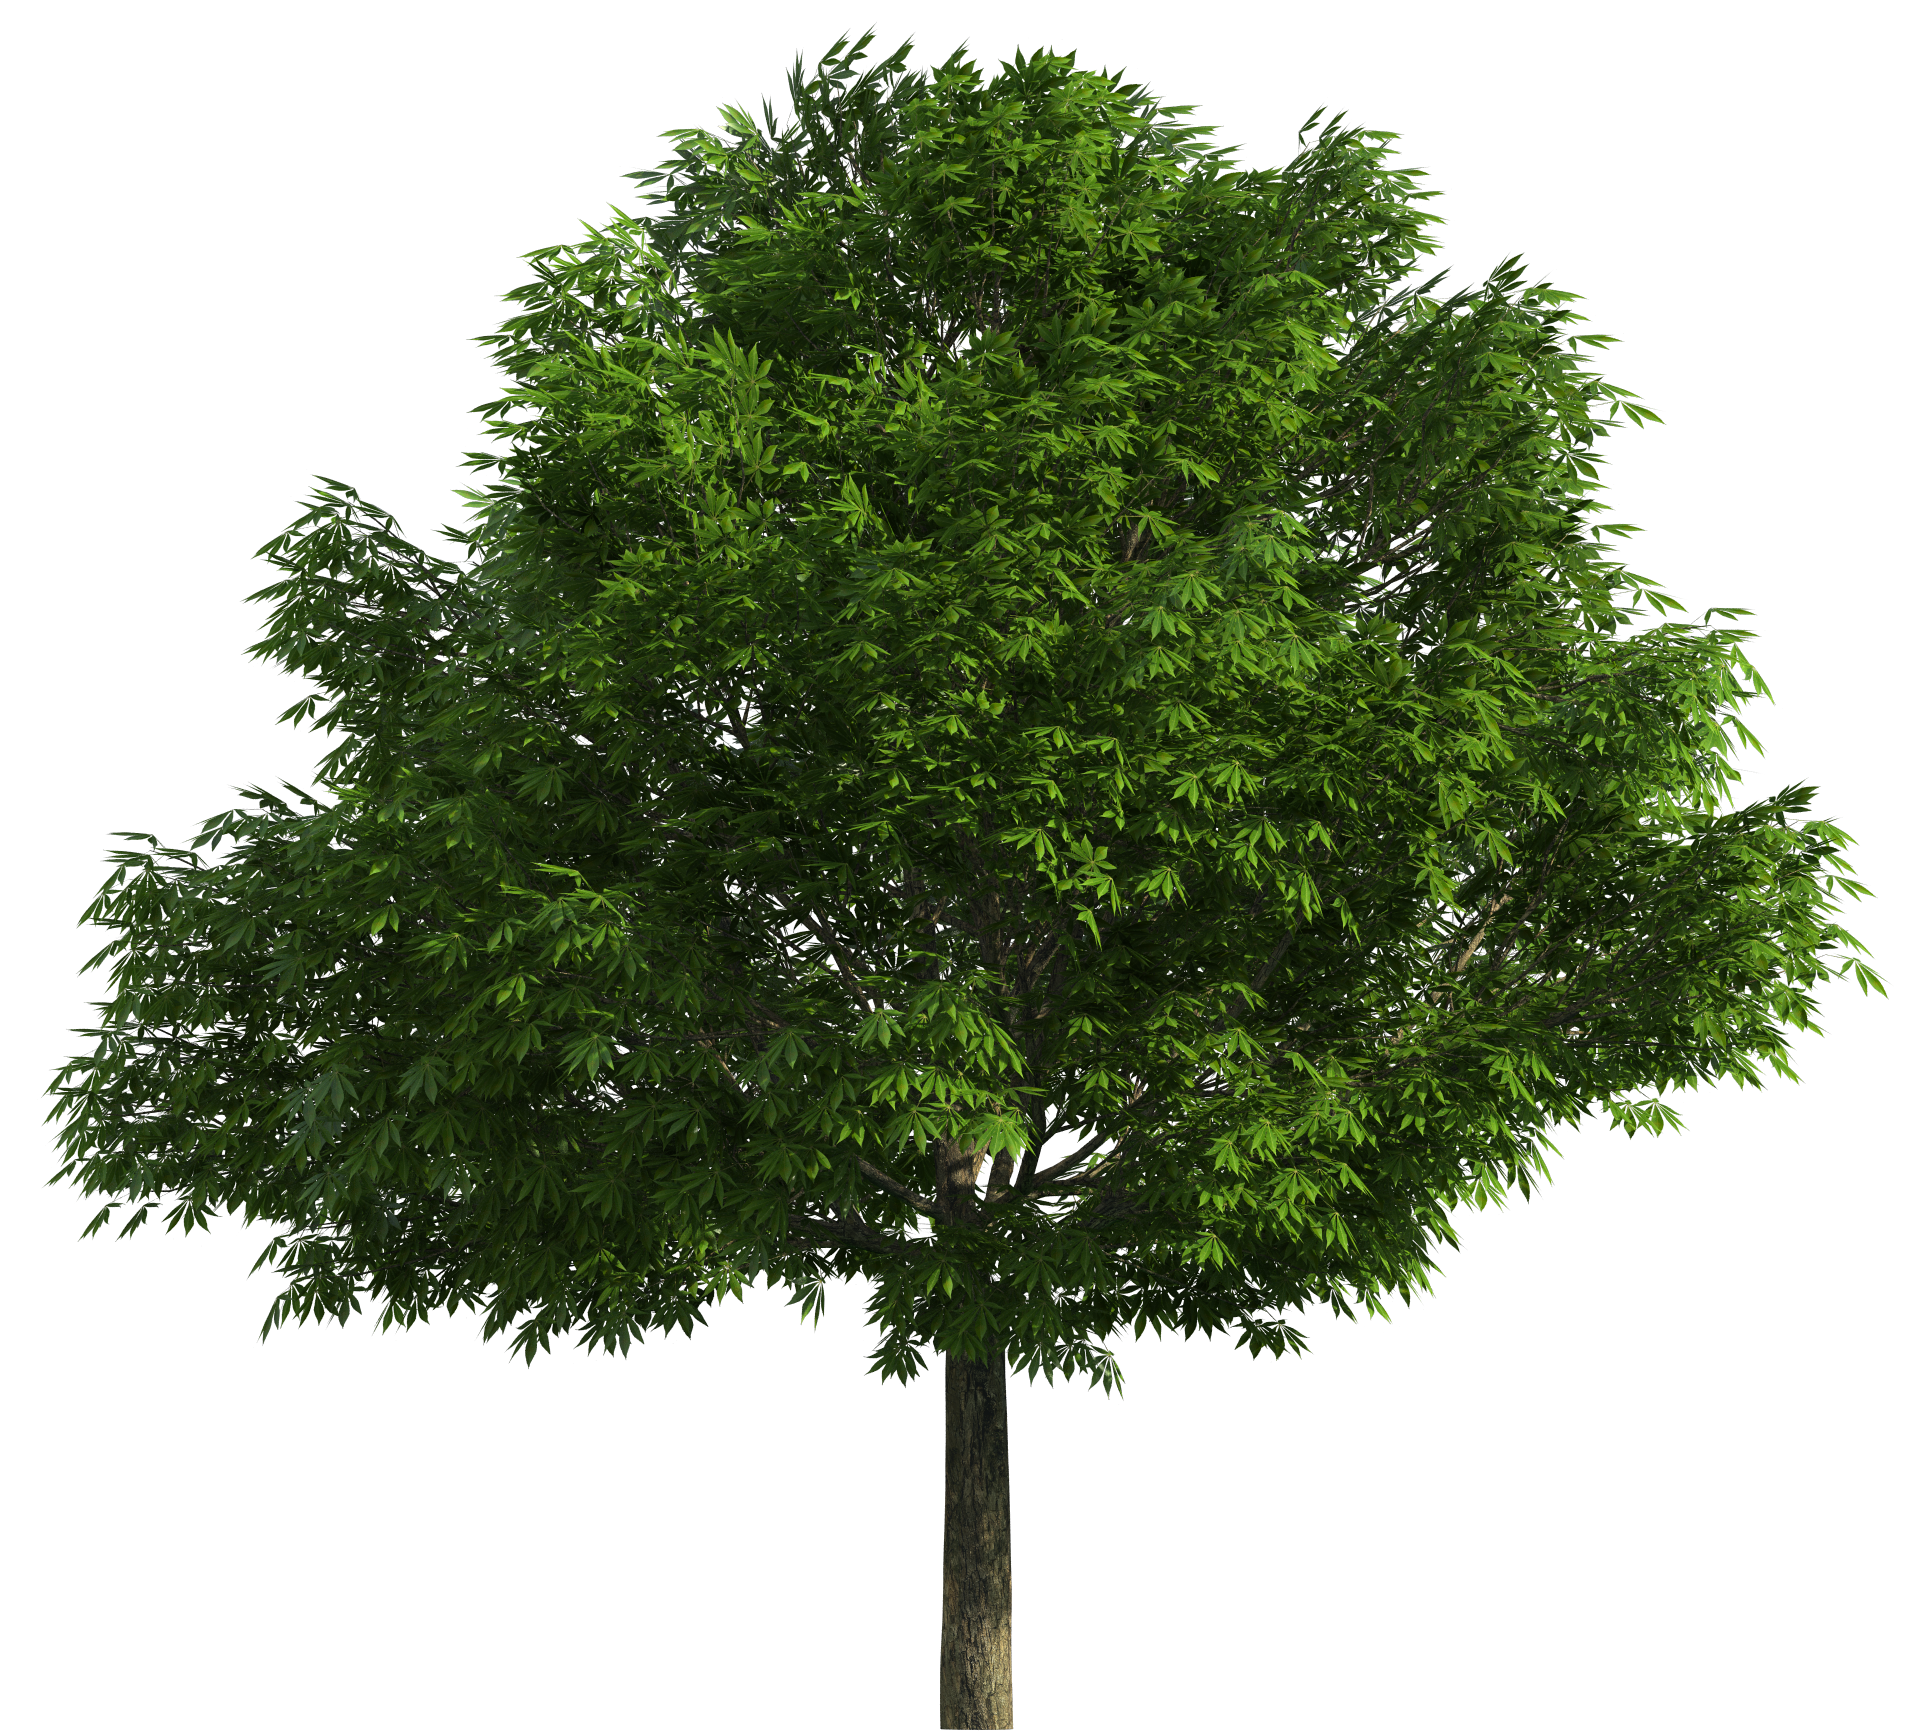 Trees in png format. Realistic tree clip art